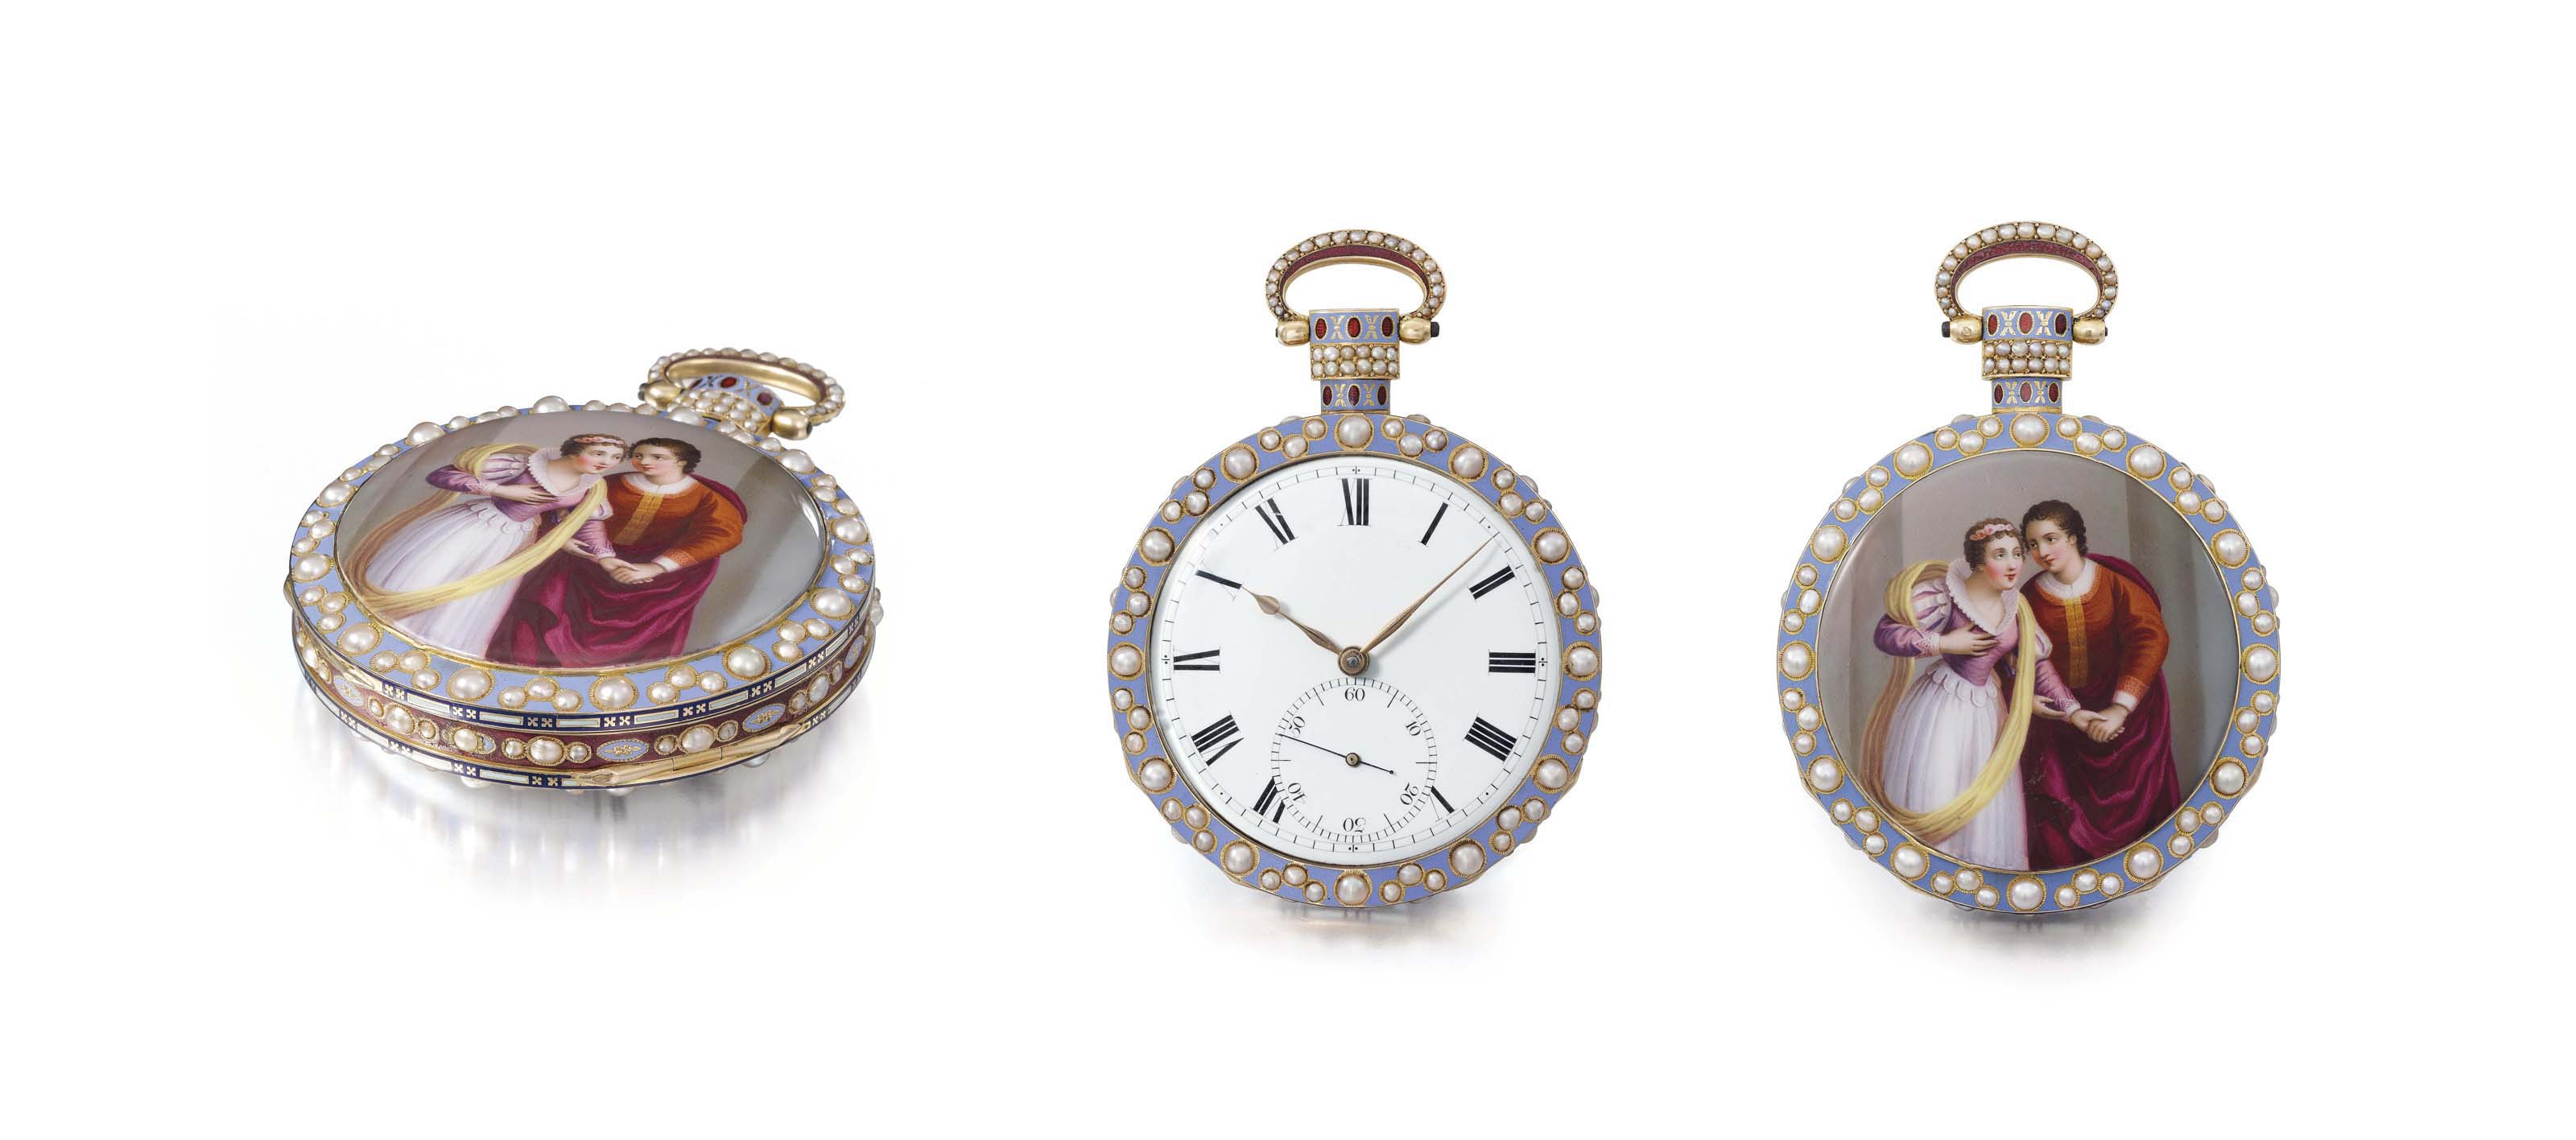 Bovet. A very fine, large and impressive 18K gold, enamel and pearl-set openface duplex watch with enamel attributed to Dupont, made for the Chinese Market